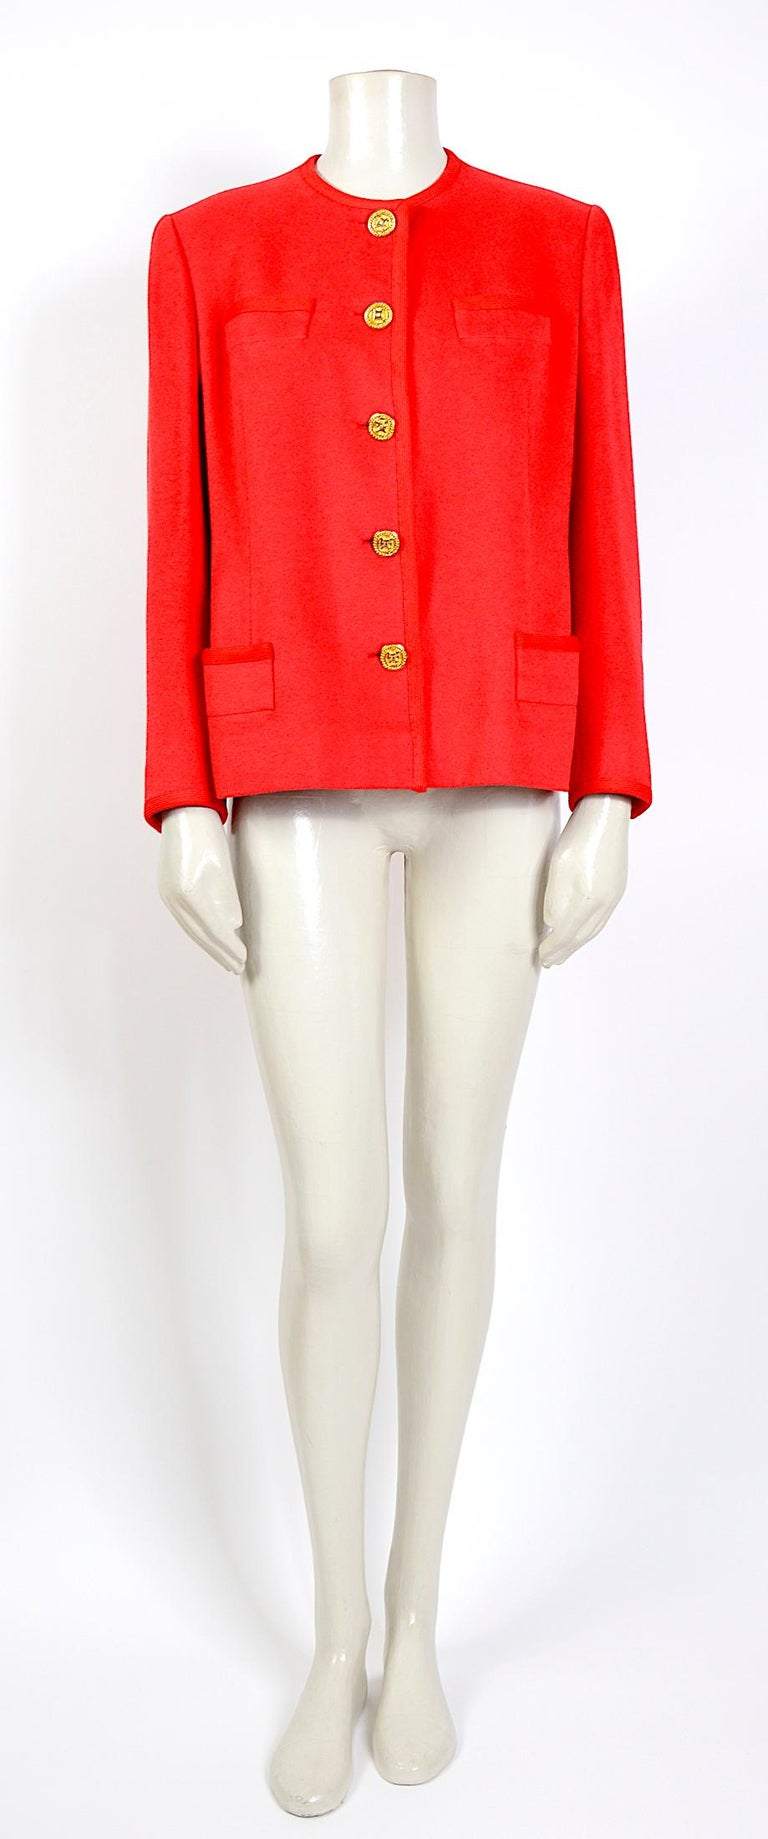 Adorable vintage Celine red wool with gold signature buttons jacket. Fully lined - In good vintage condition - no damage No size label, please go by the measurements that are taken flat: Sh to Sh 16,5inch/42cm - Ua to Ua 21 inch/53cm(x2) - Waist